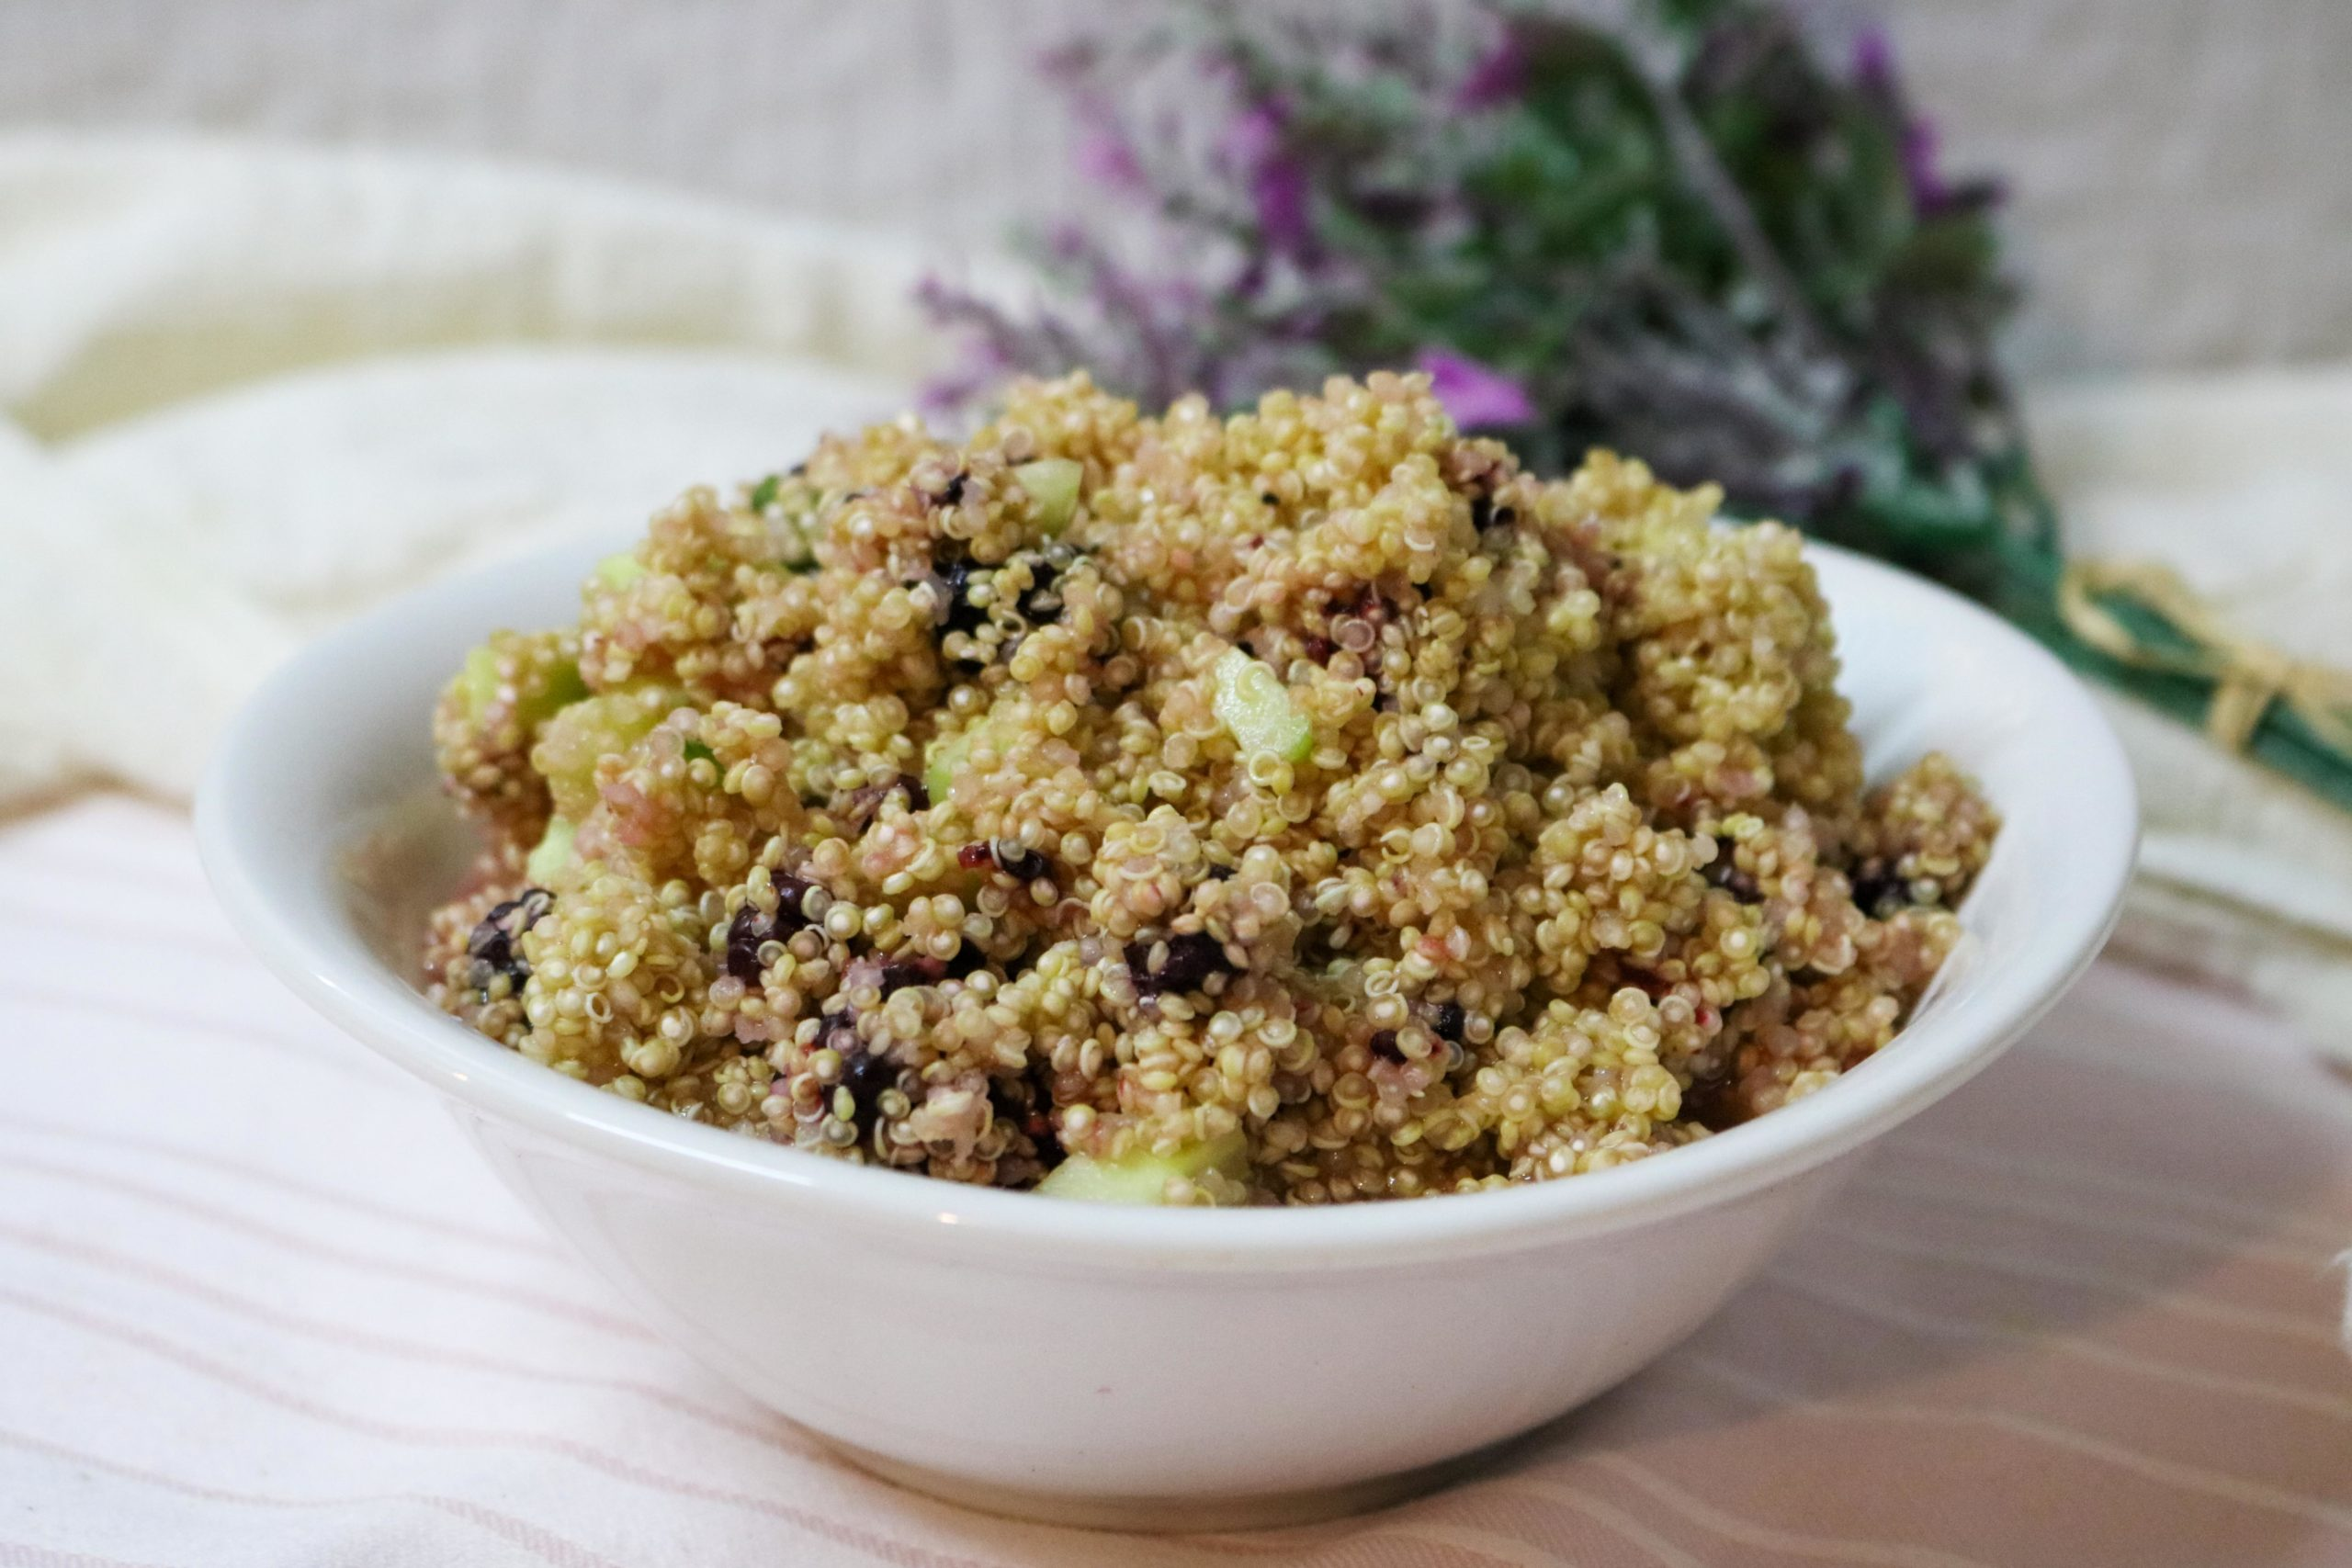 Quinoa Salad with Blackberries and Lemon Vinaigrette Recipe